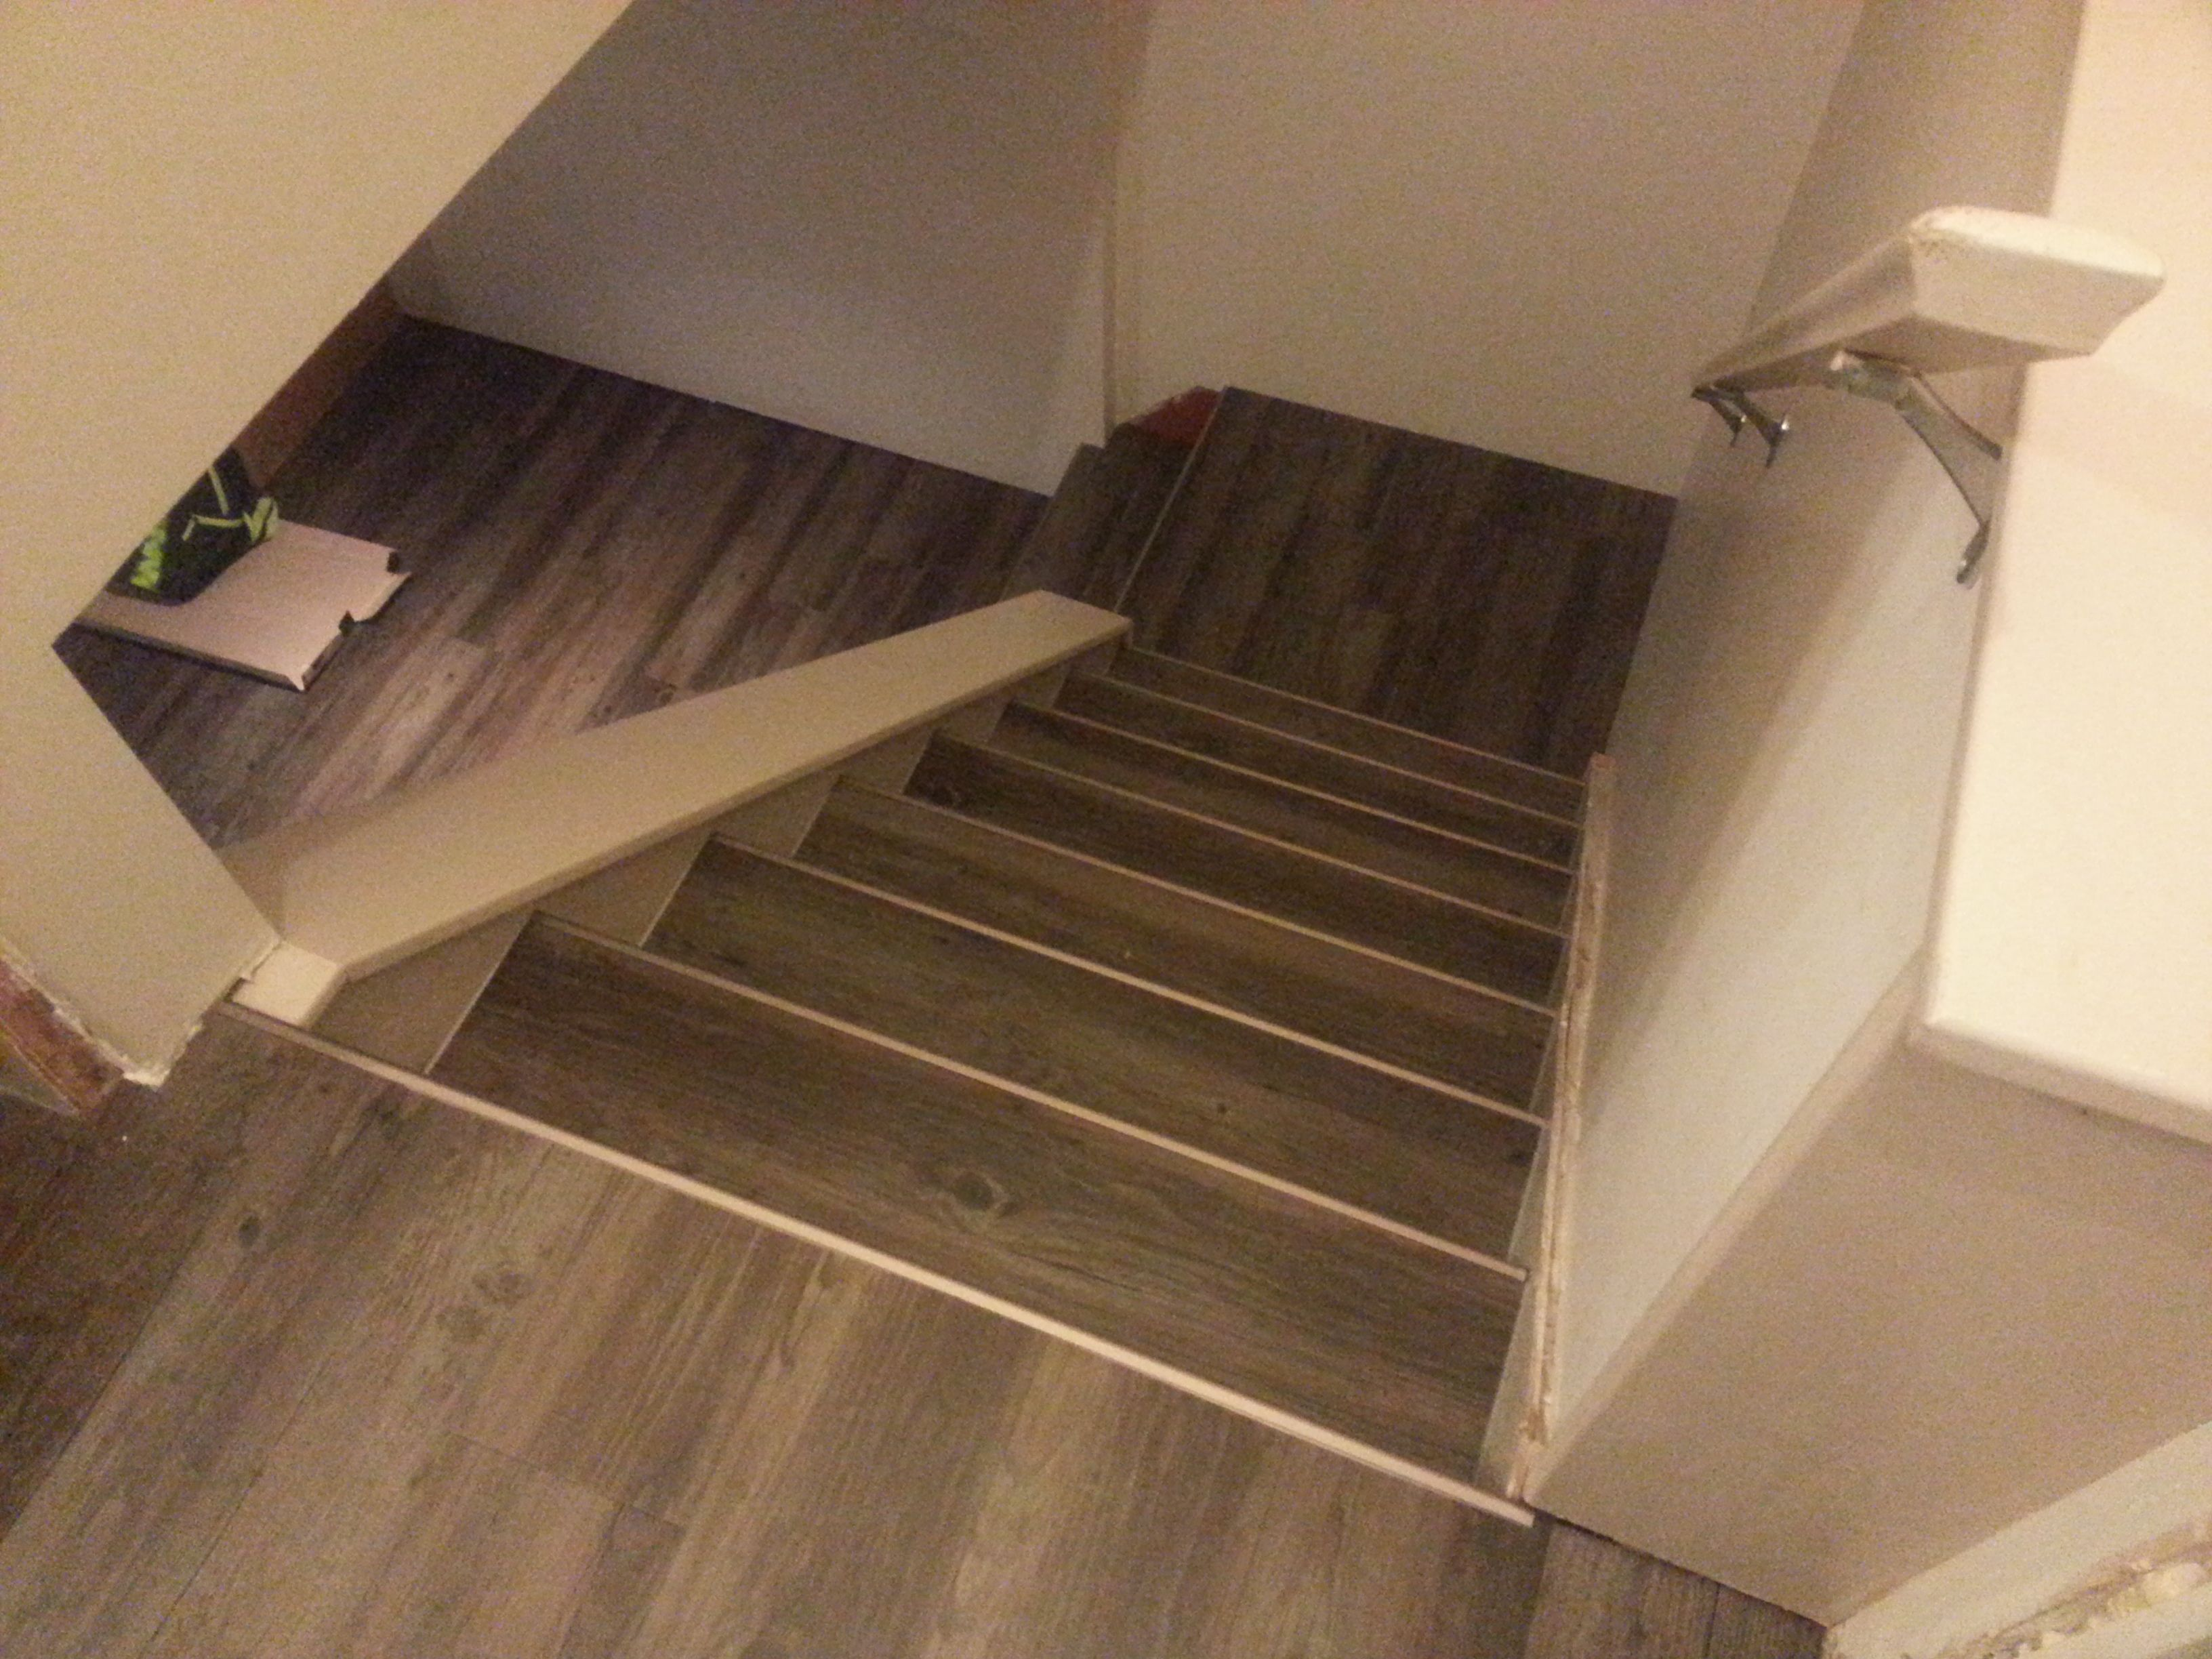 Uncategorized Stair Carpet Nosing drop done luxury vinyl plank in eastern township with metal insert stair nosing